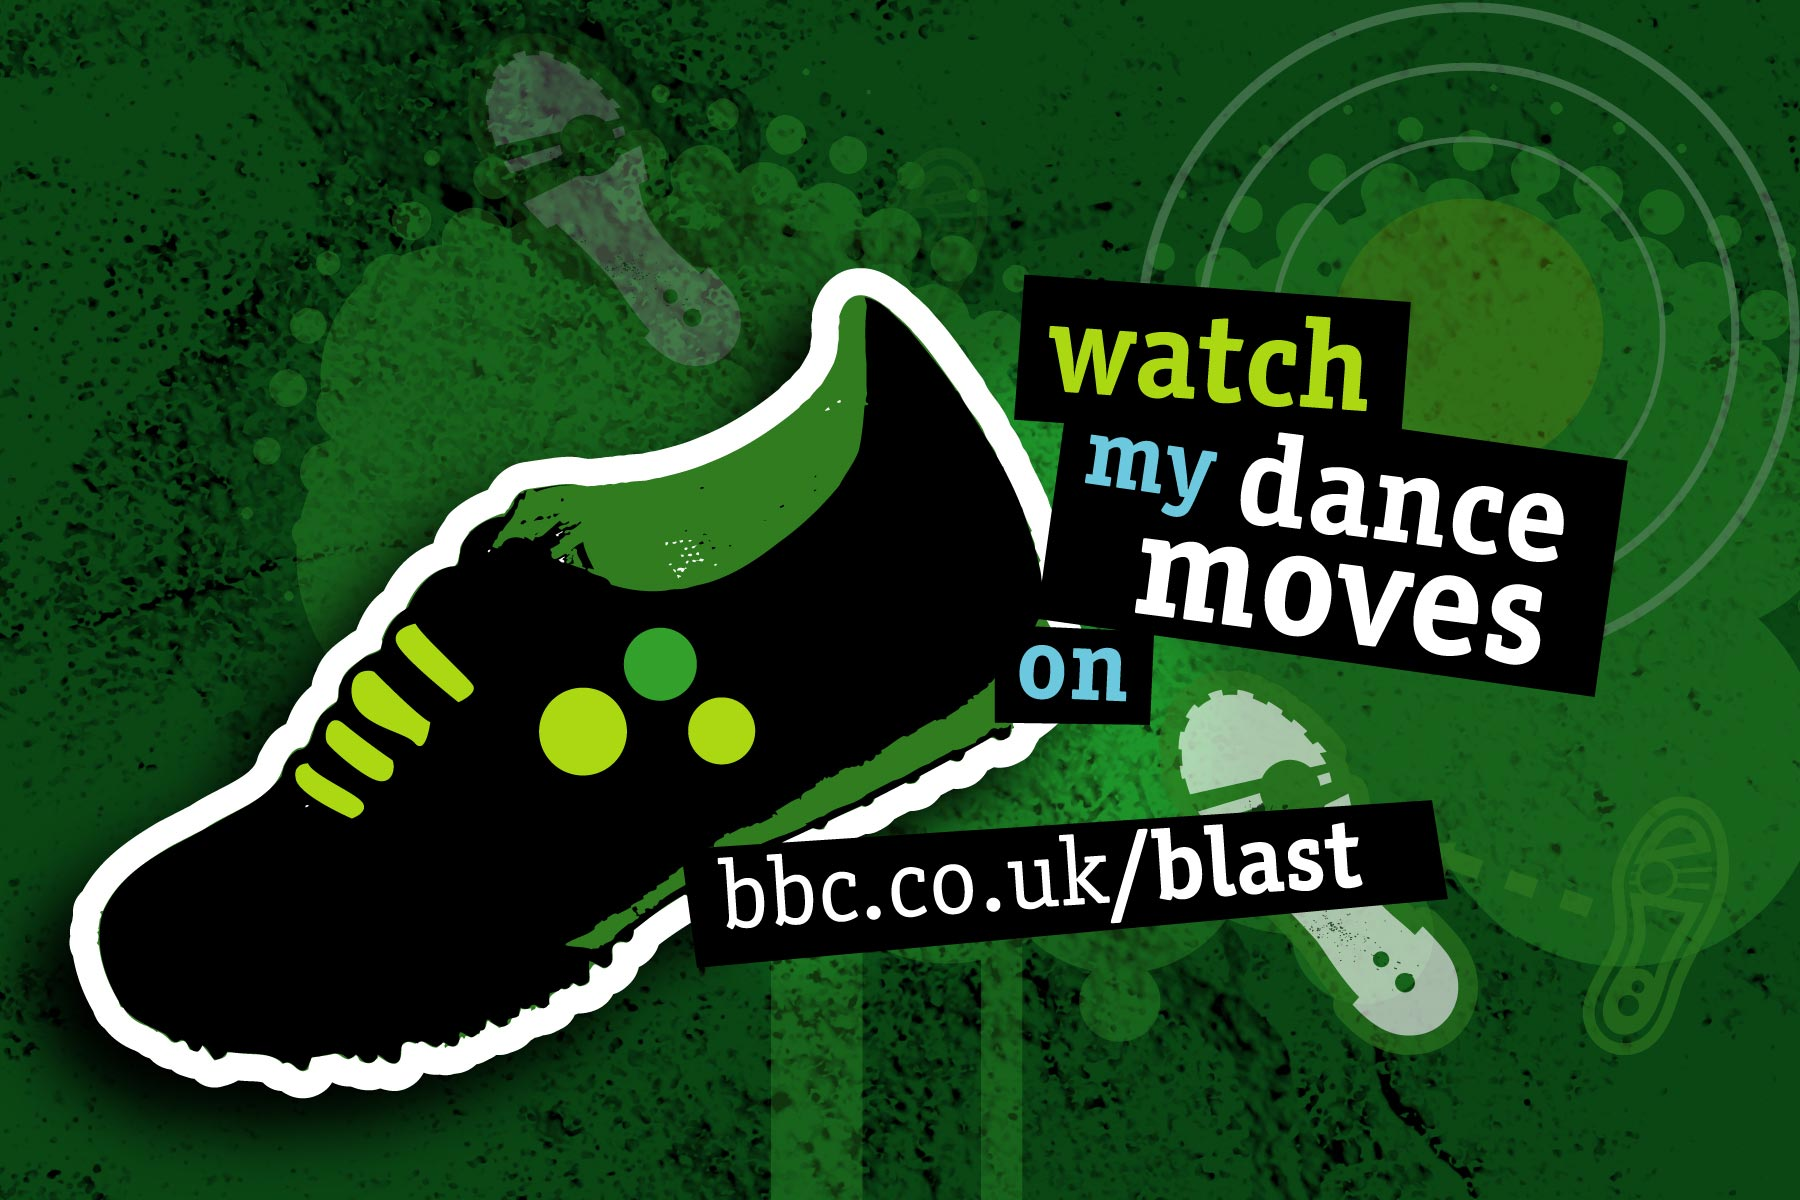 We provided assets for all creative disciplines - For example, dance within this image. We also created assets for mobile and the Blast on Tour roadshow environment.